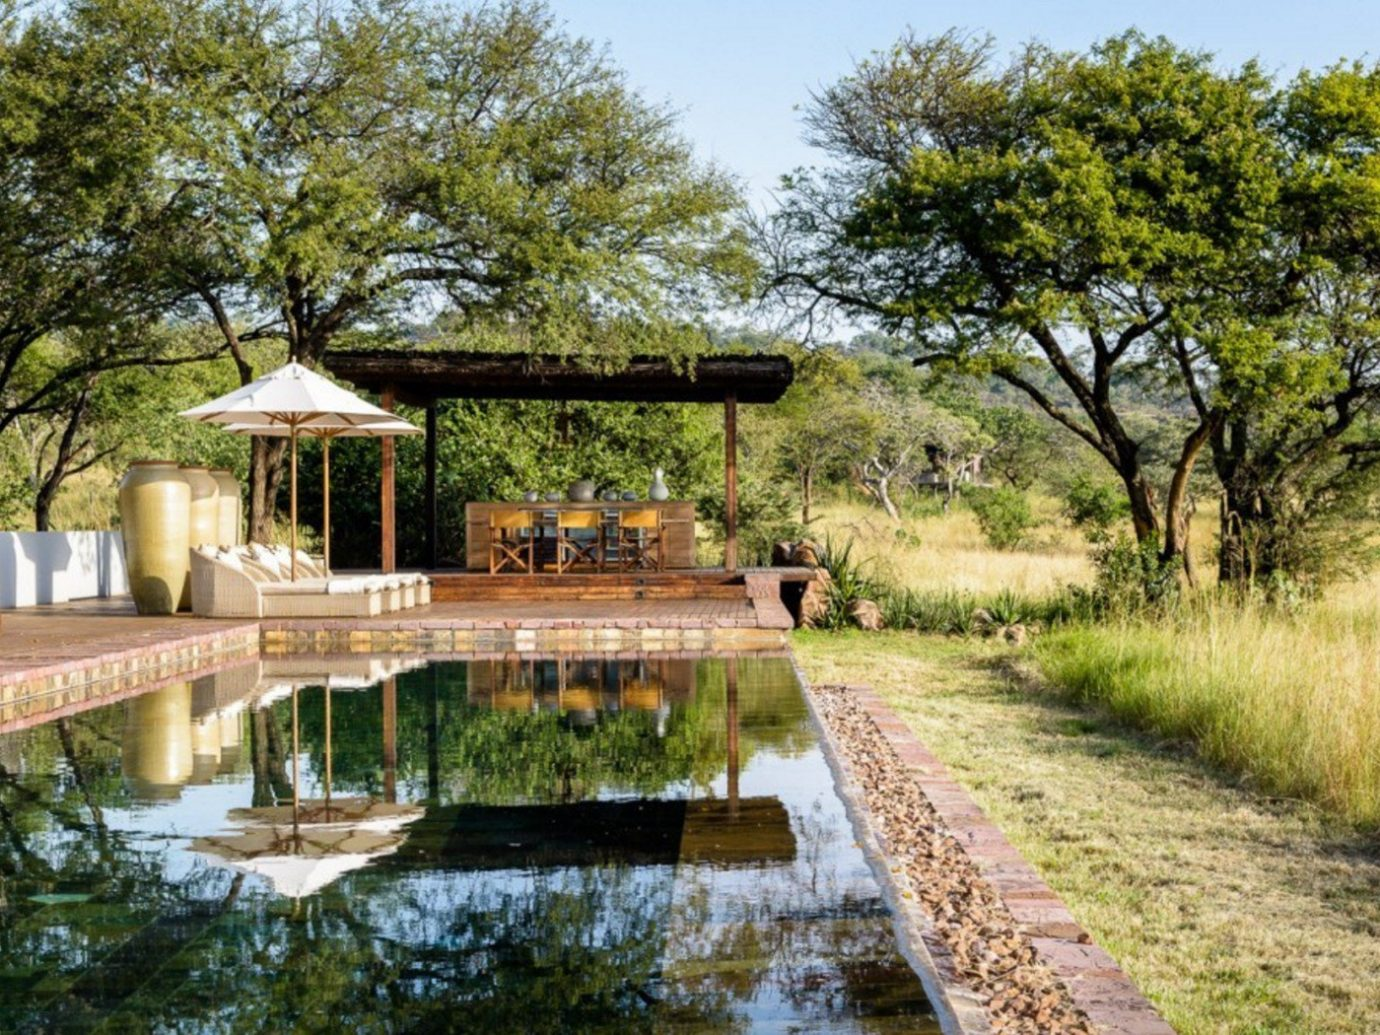 africa calm Greenery lounge chairs Luxury Nature outdoor pool Outdoors Pool private remote Safari serene sophisticated Style + Design trees tree outdoor grass property building park estate River waterway real estate Garden Canal flower cottage Villa pond surrounded